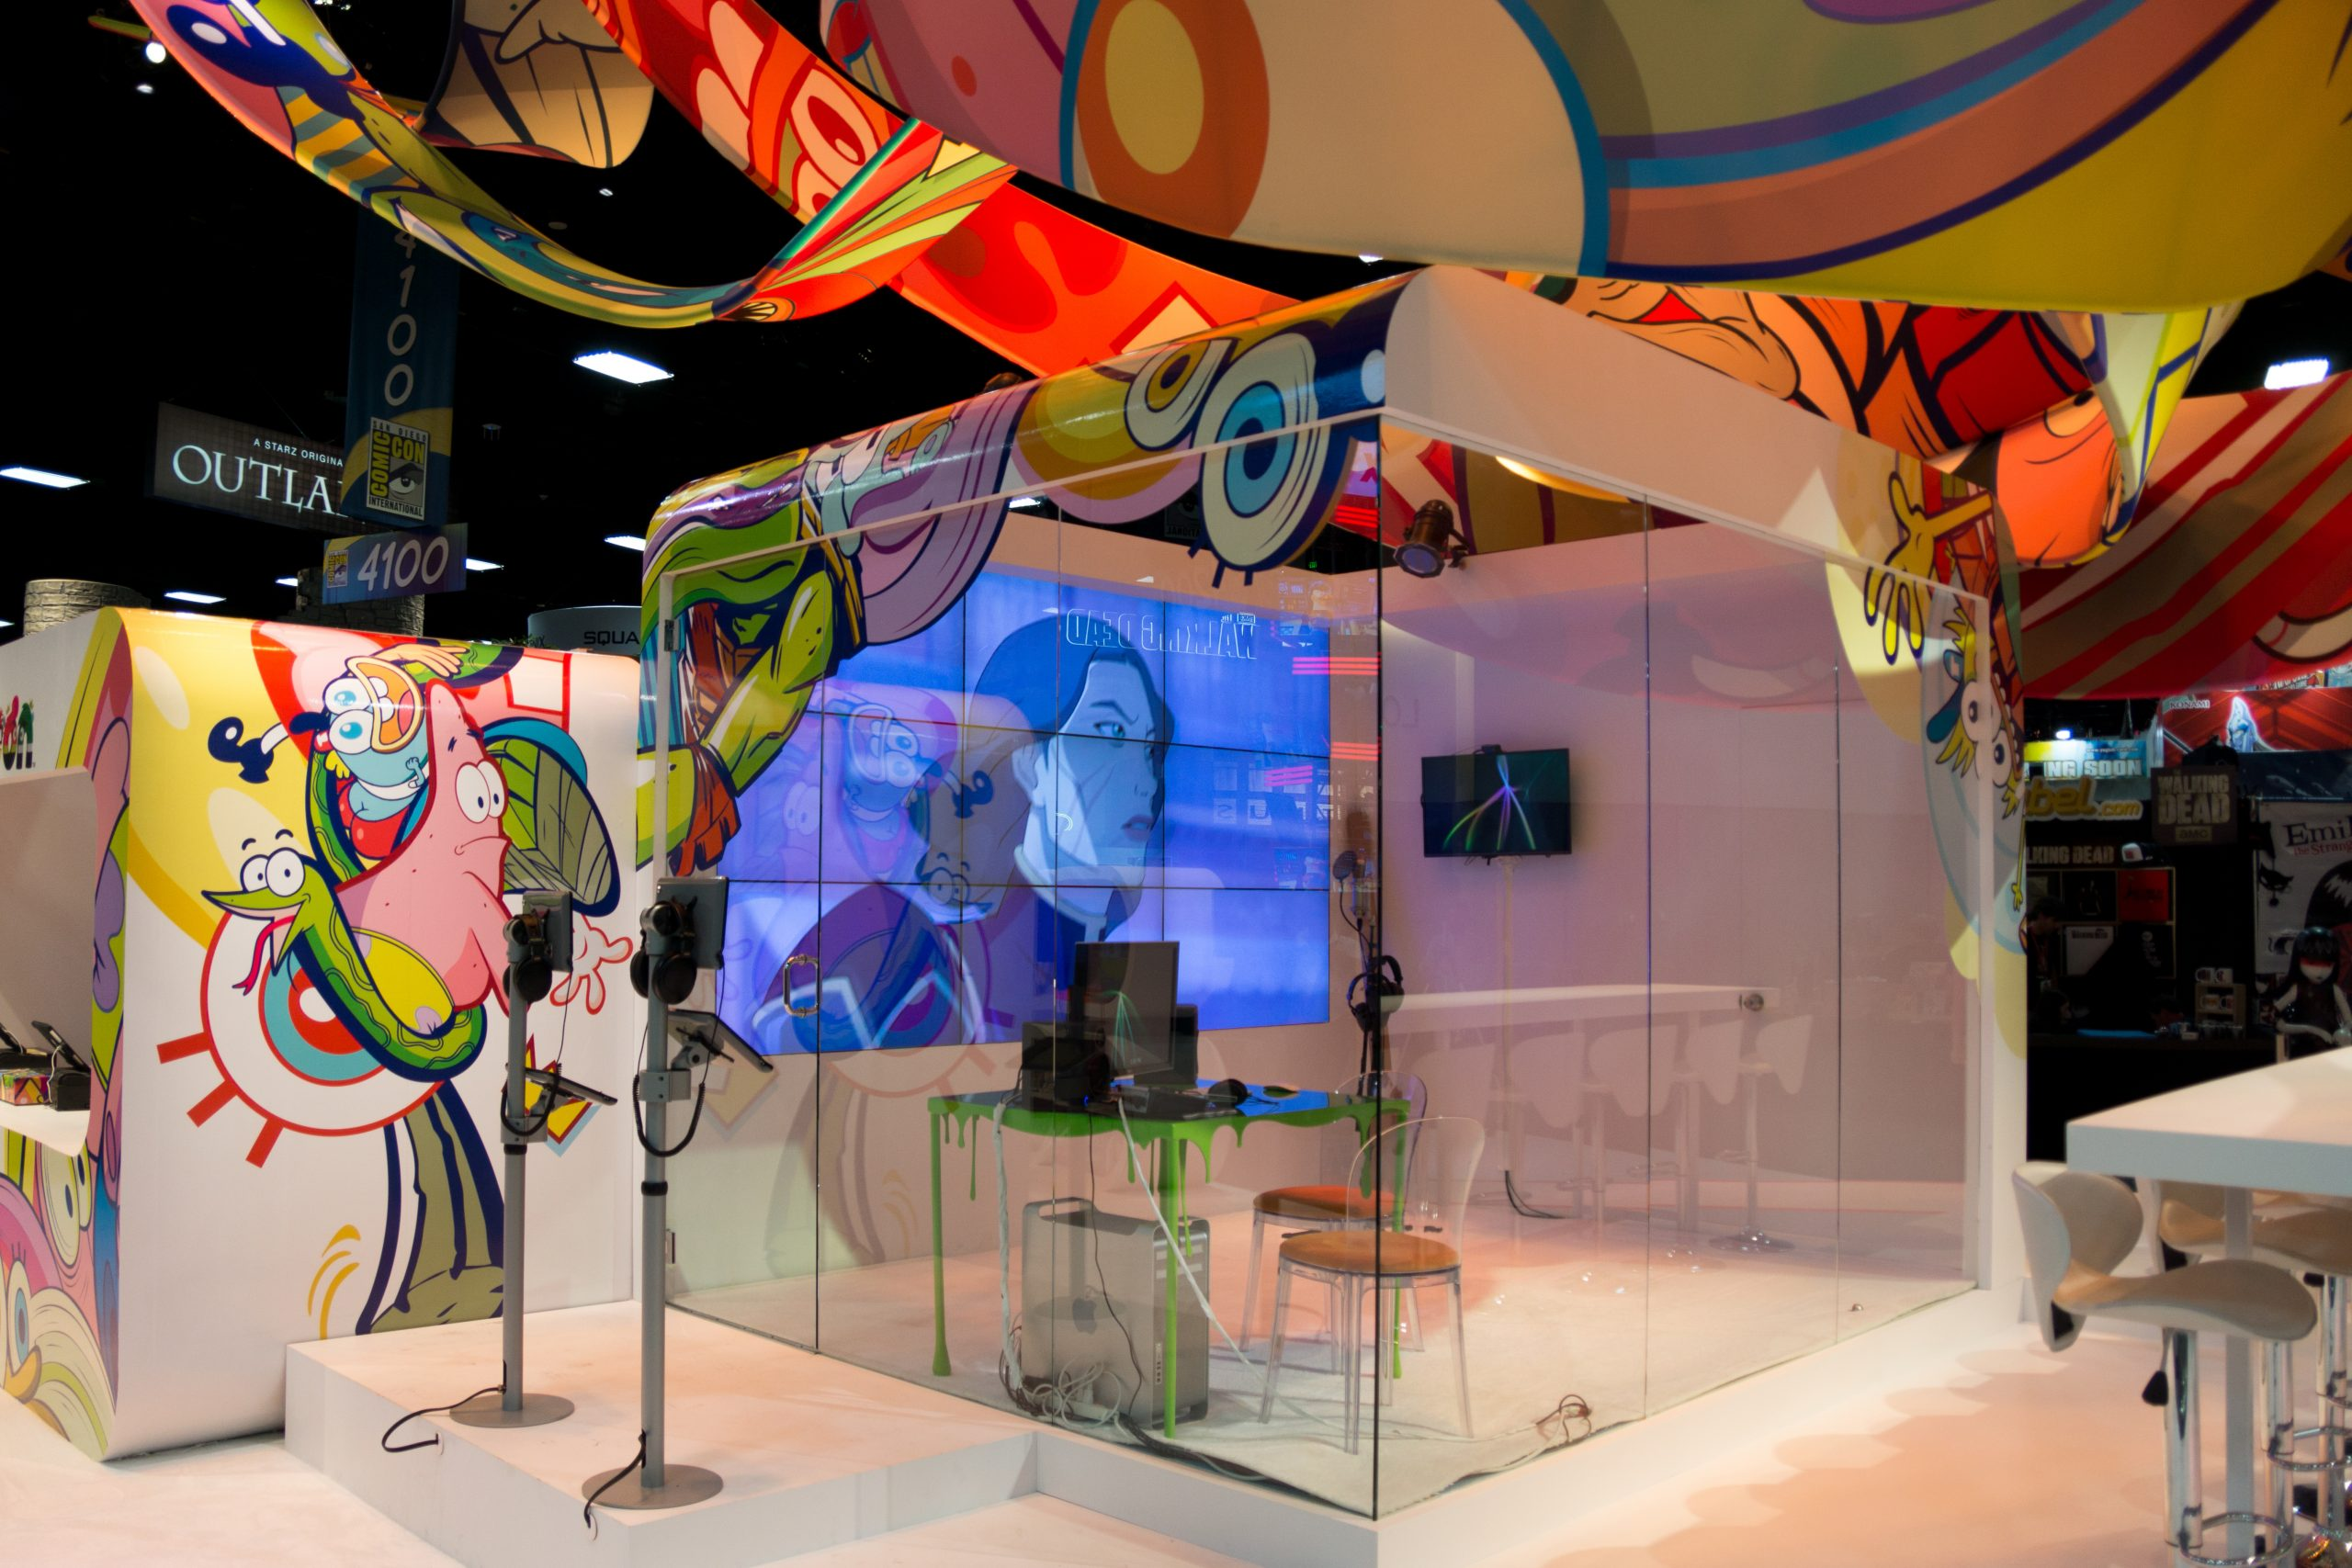 Nickelodeon voice over booth